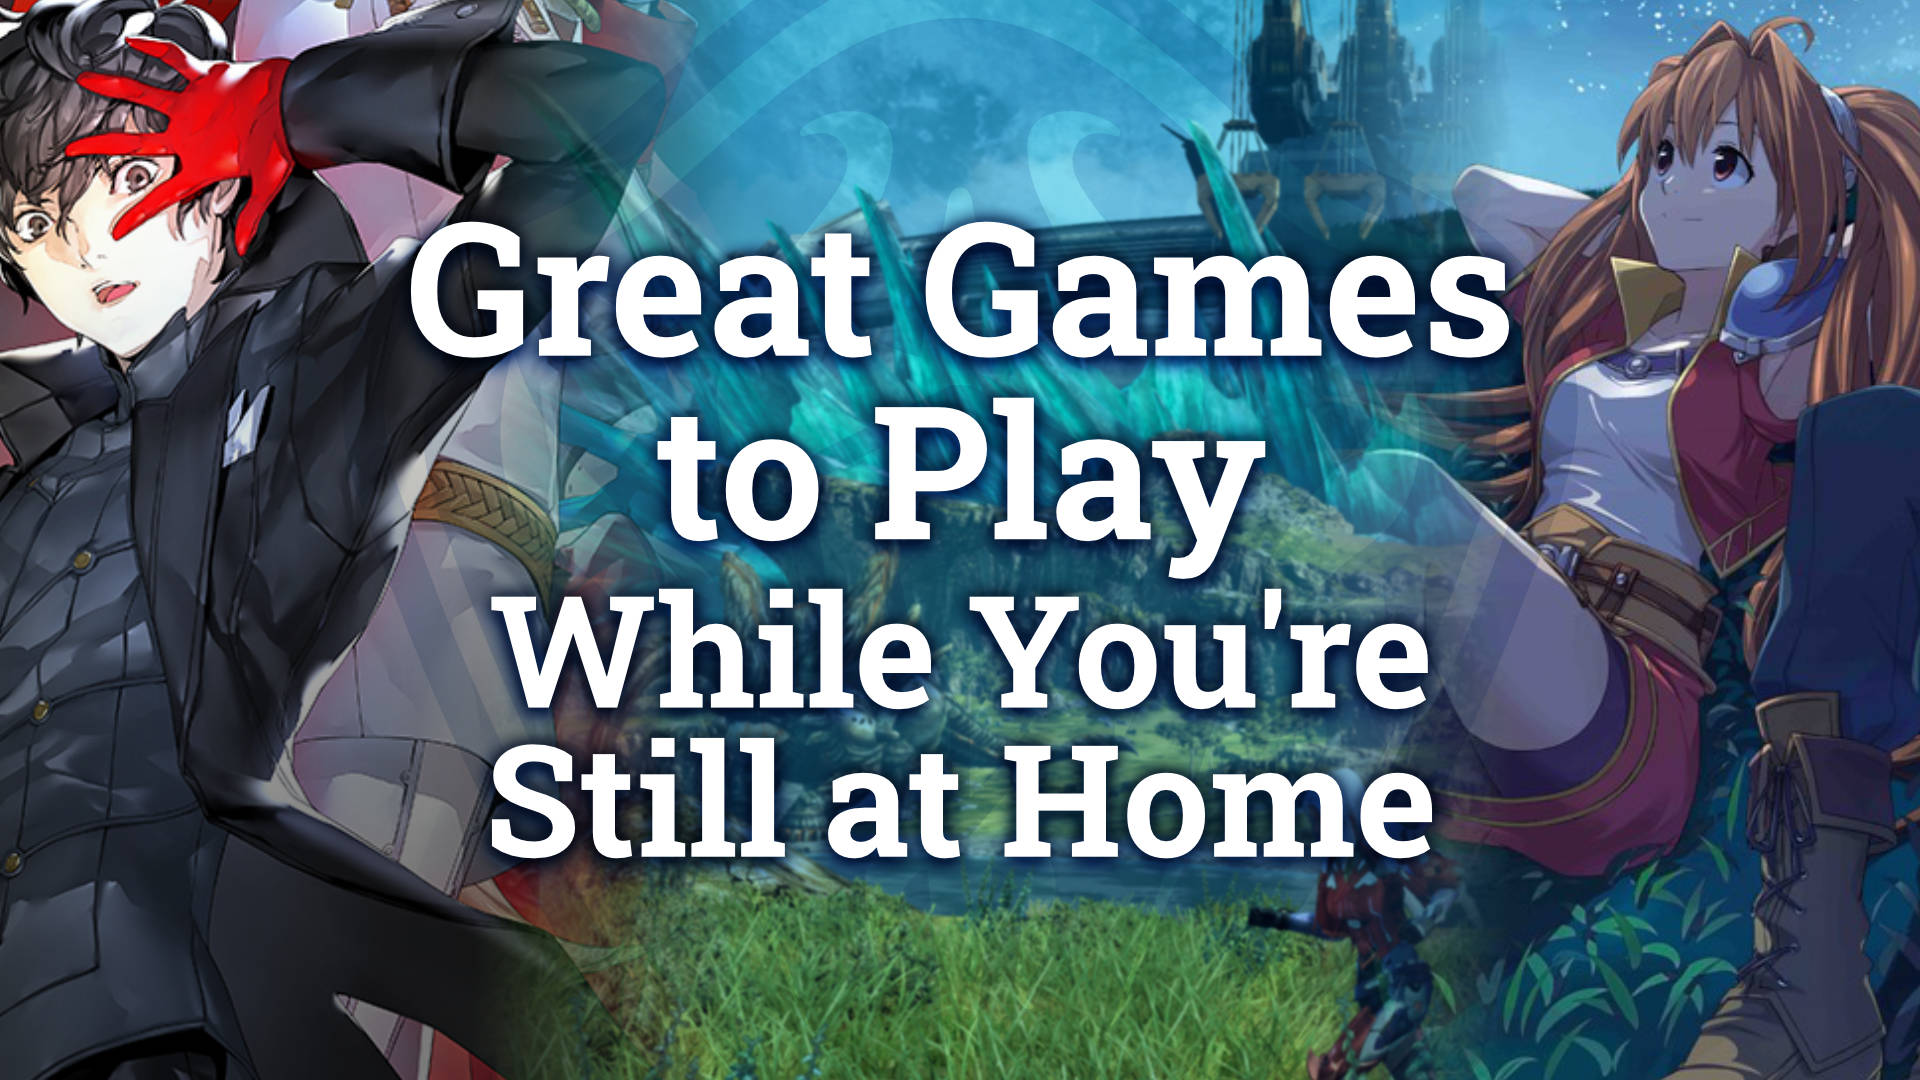 Great Games to Play While You're Still at Home